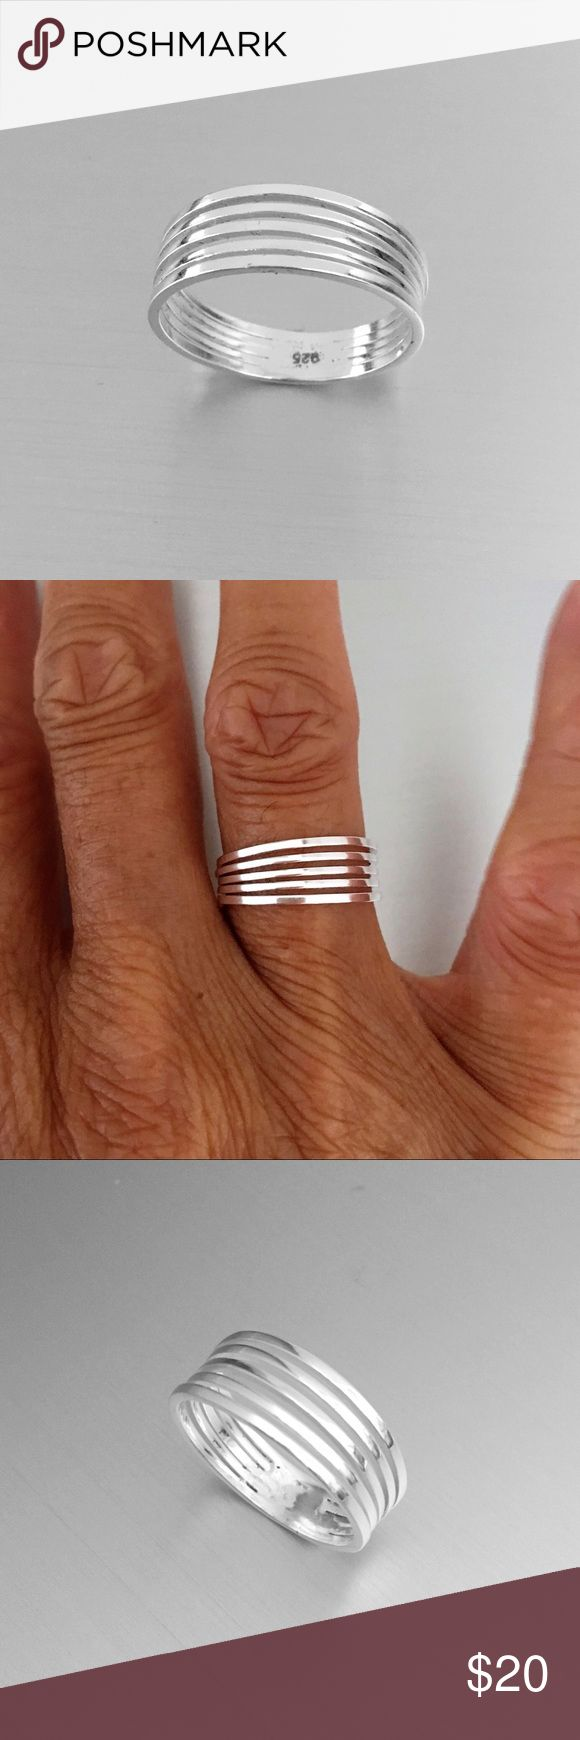 Sterling Silver Plain Ring Sterling Silver 5 Thin Band Attached Band Ring, Pinky Ring, Index Ring, Thumb Ring, 925 Sterling Silver, Face Height 7 mm Jewelry Rings